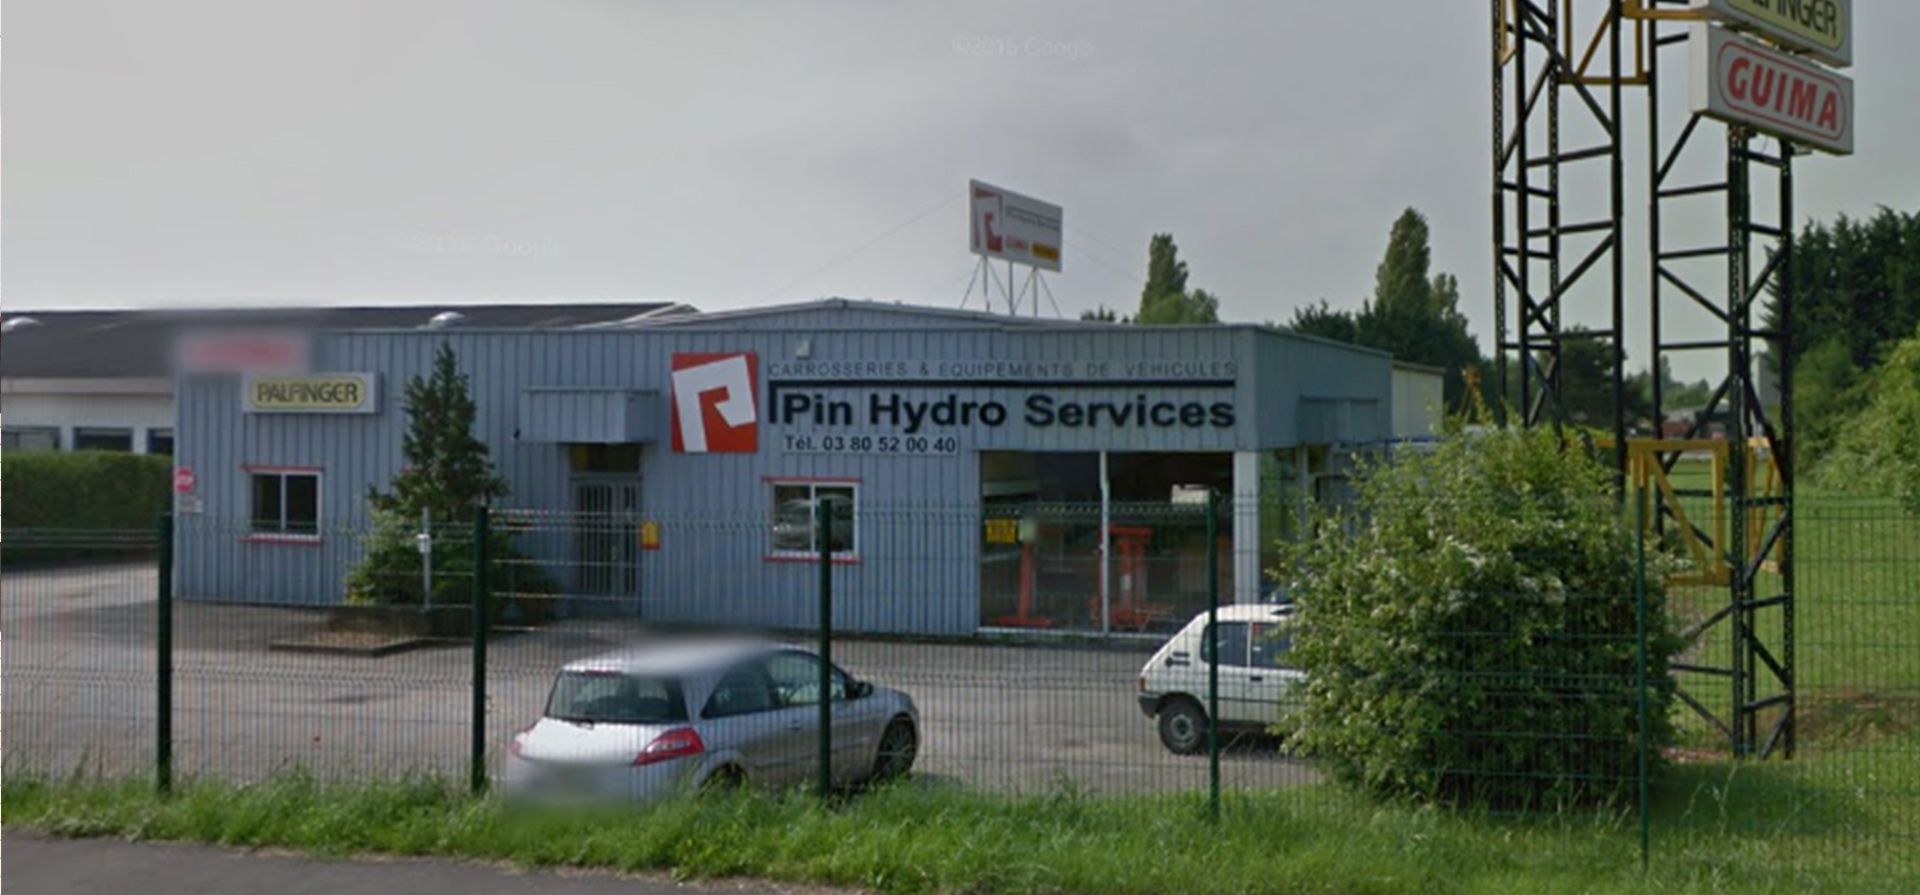 Pin hydro services